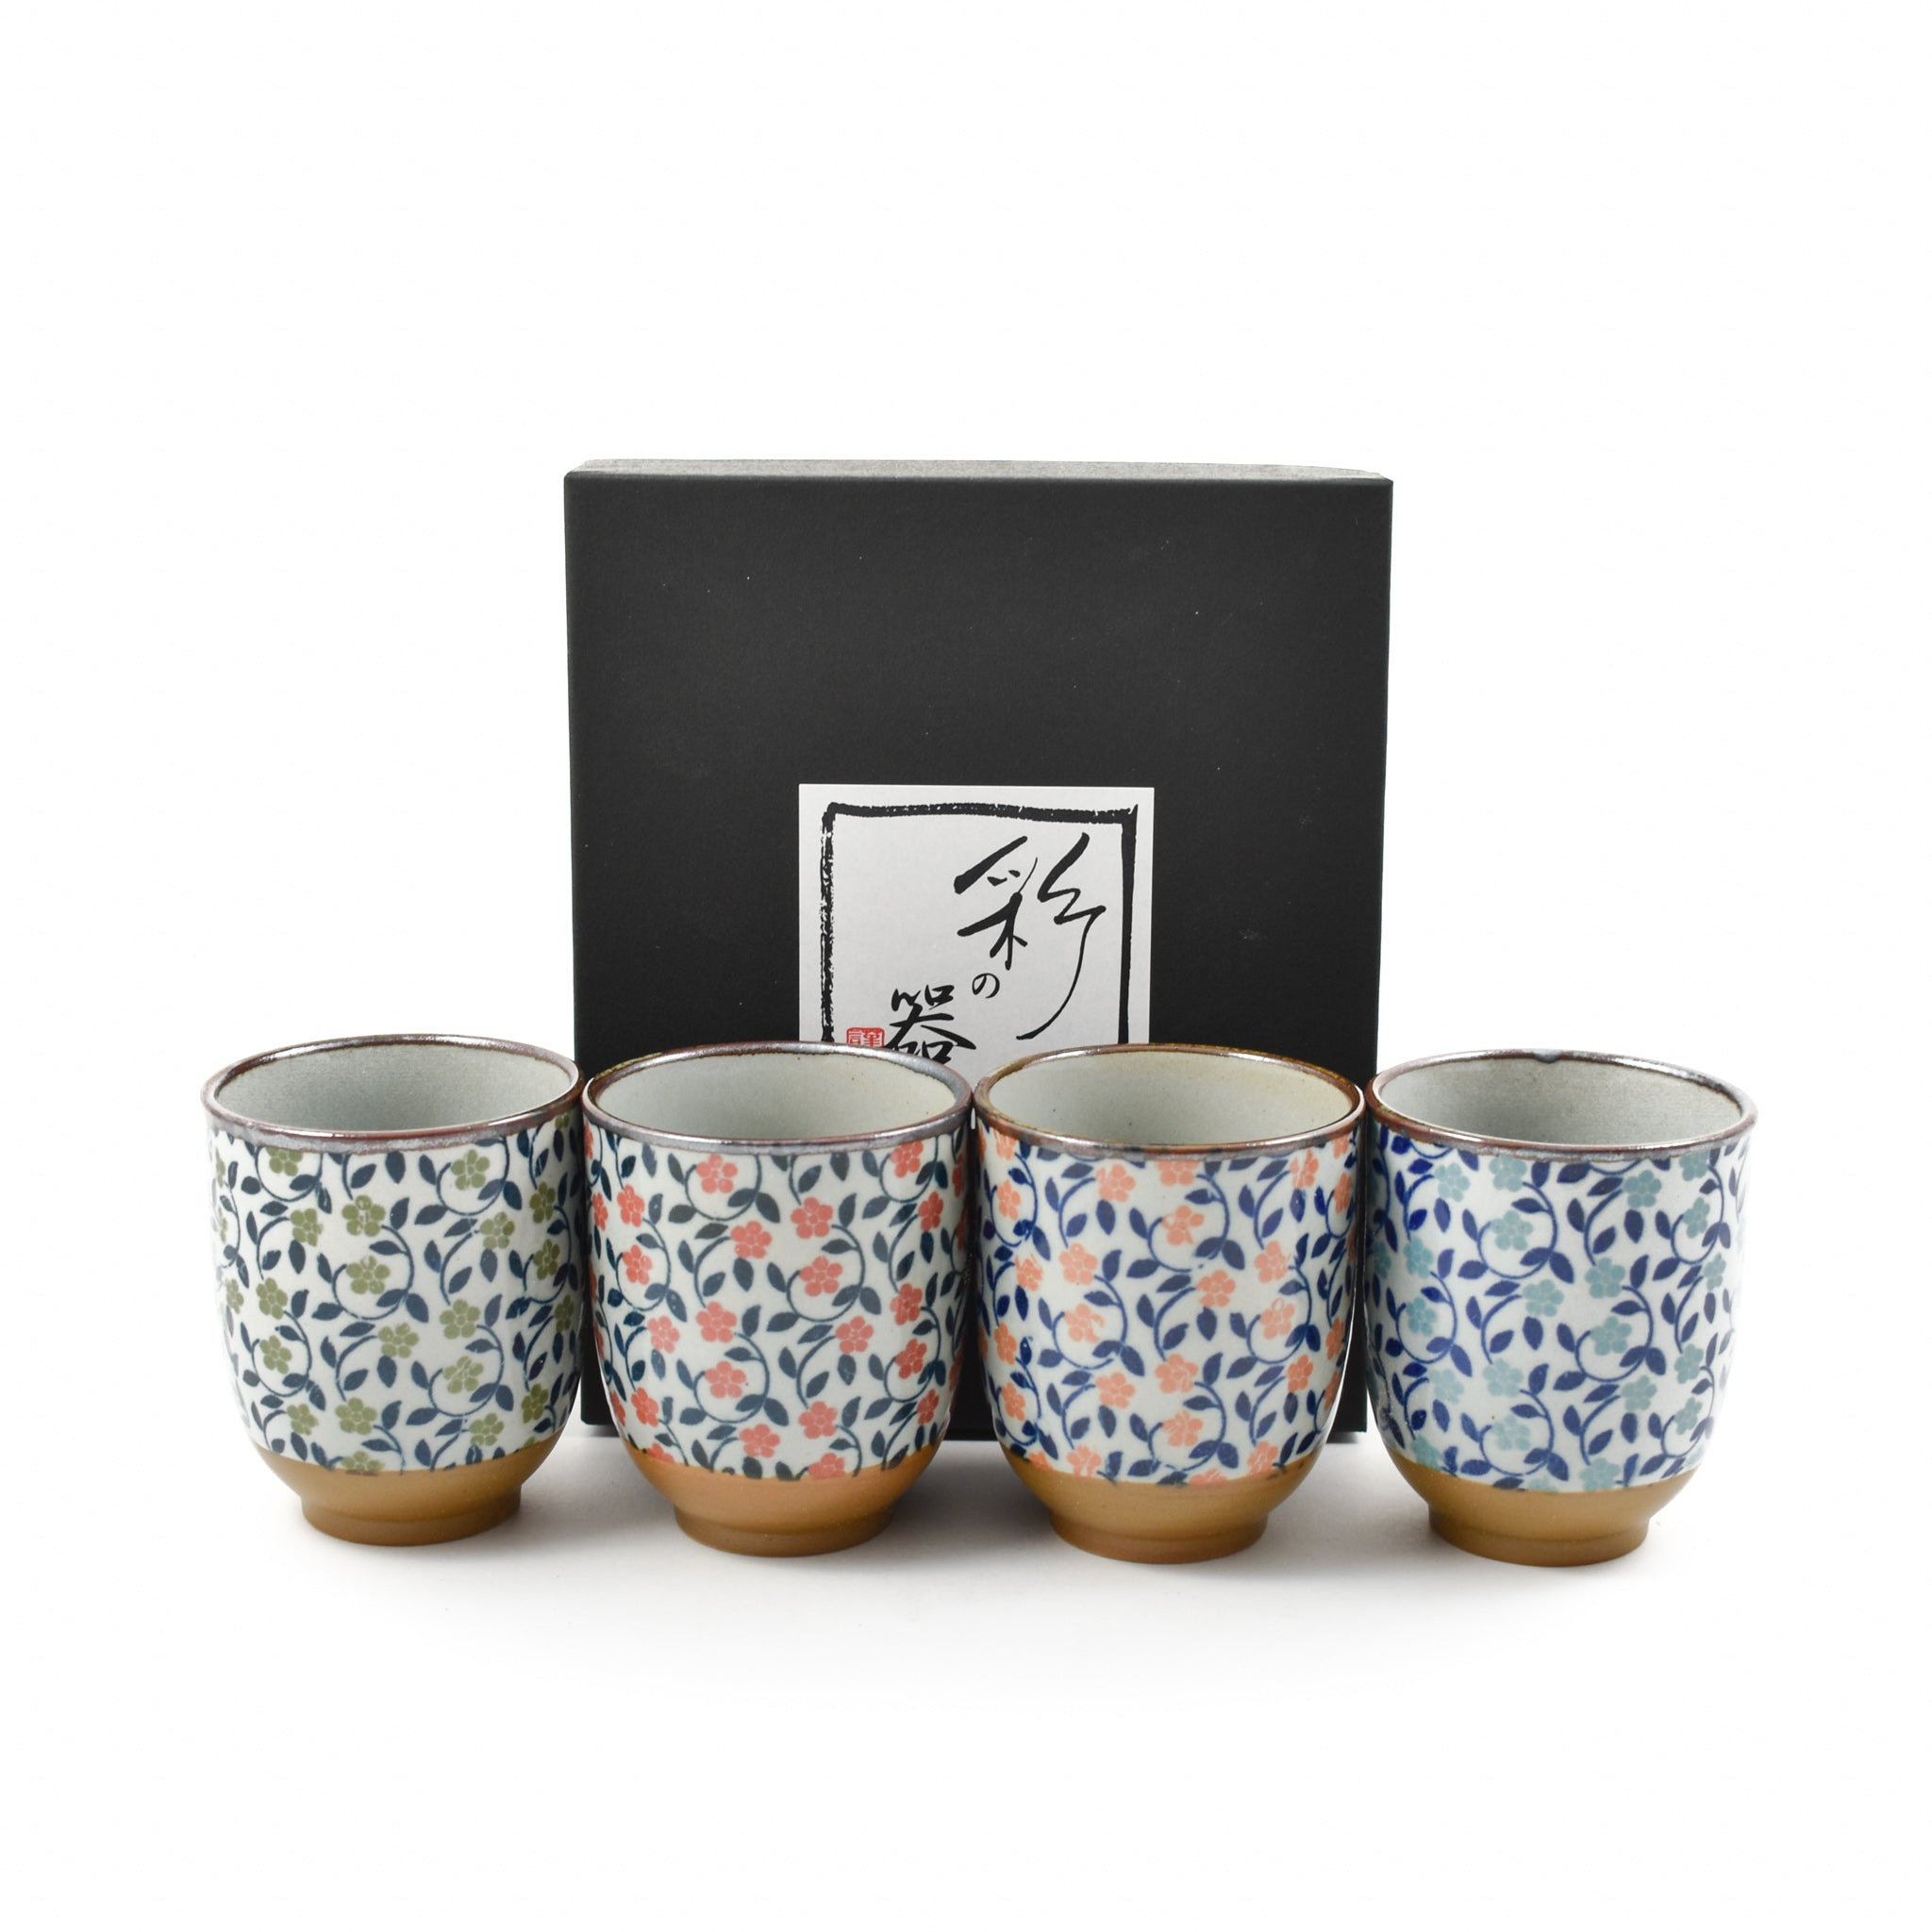 Kiji Stoneware & Ceramics Colourful Japanese Flower Tea Cup Set Tableware Japanese Tableware Japanese Food